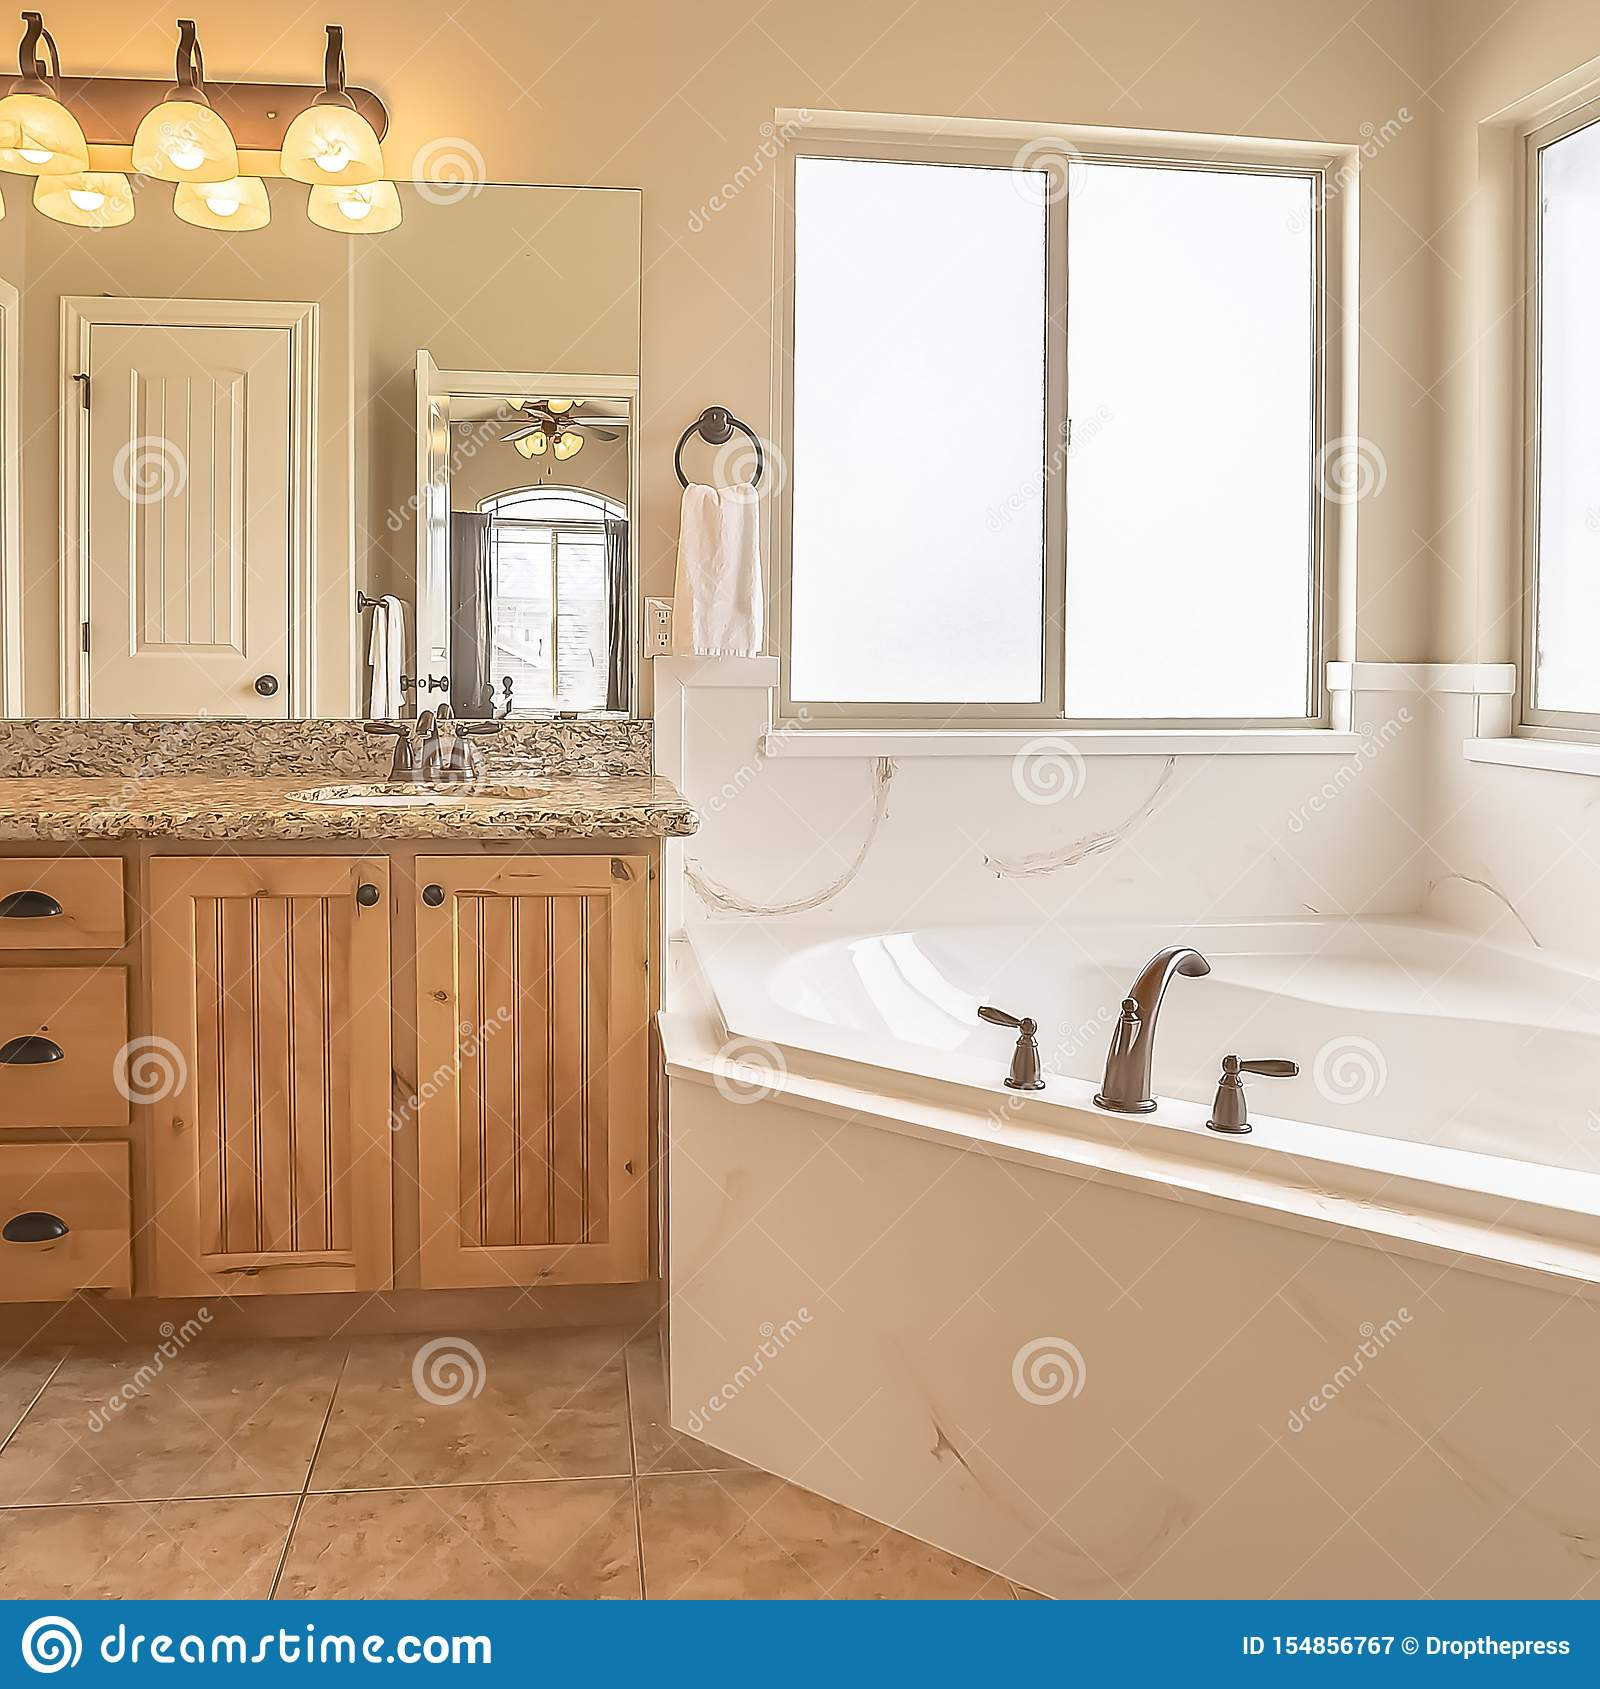 Square Built In Bathtub At The Corner Of A Home Bathroom With Tile Floor And Beige Wall Stock Image Image Of Sink Architecture 154856767